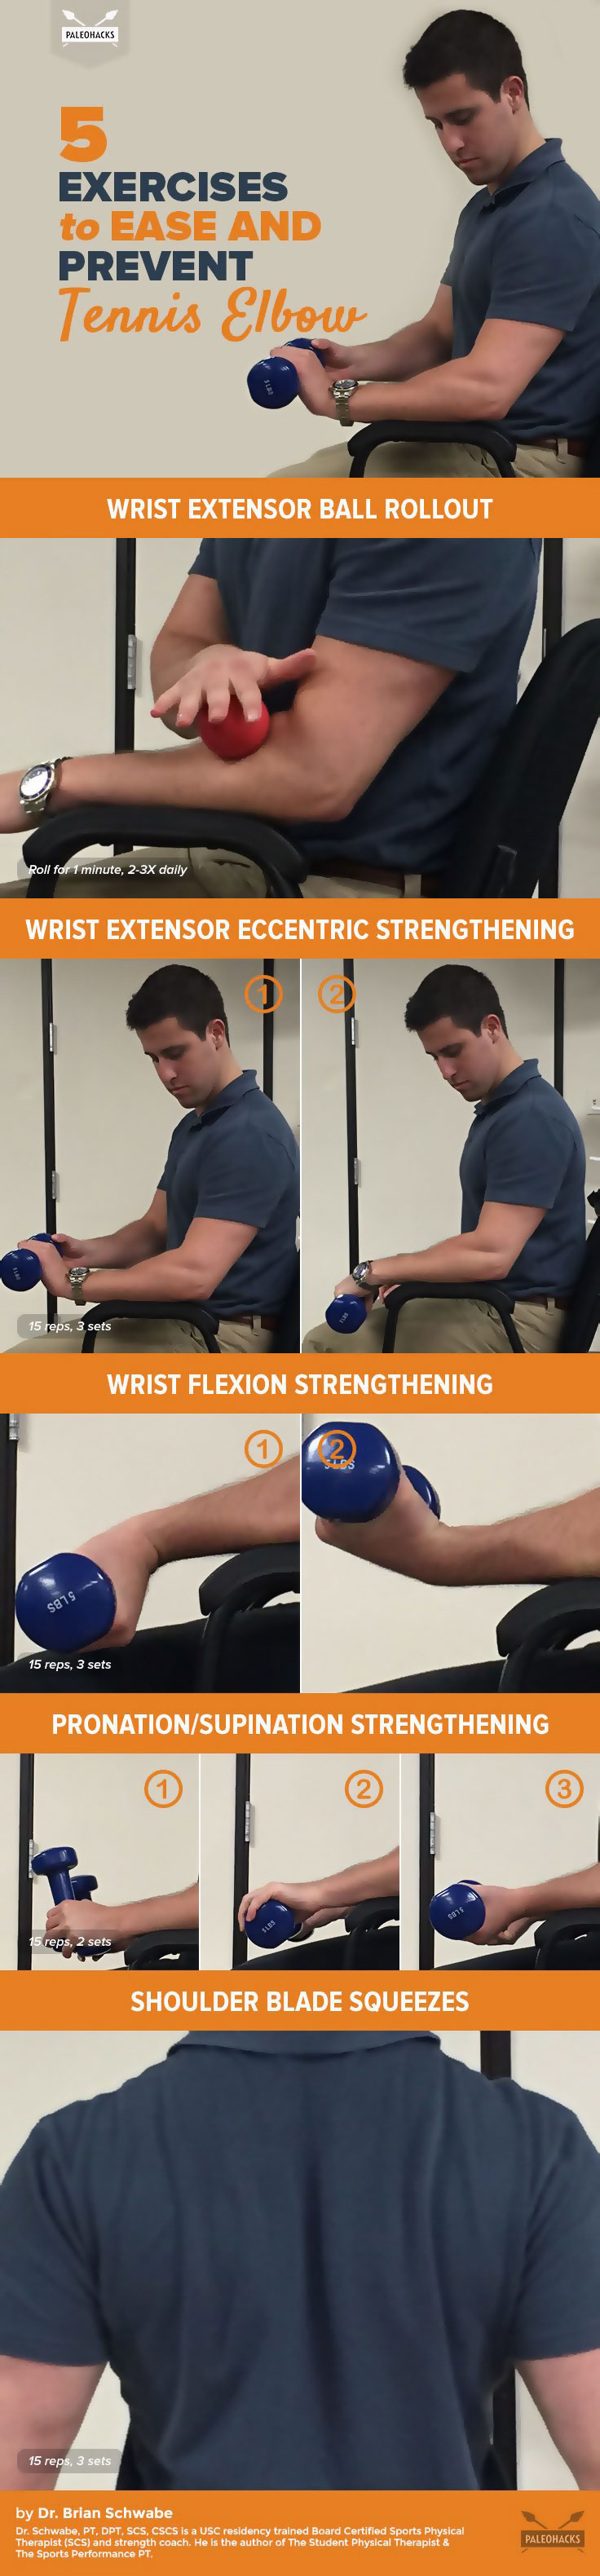 Painful Tennis Elbow? Fight Back with These 5 Exercises - Infographic